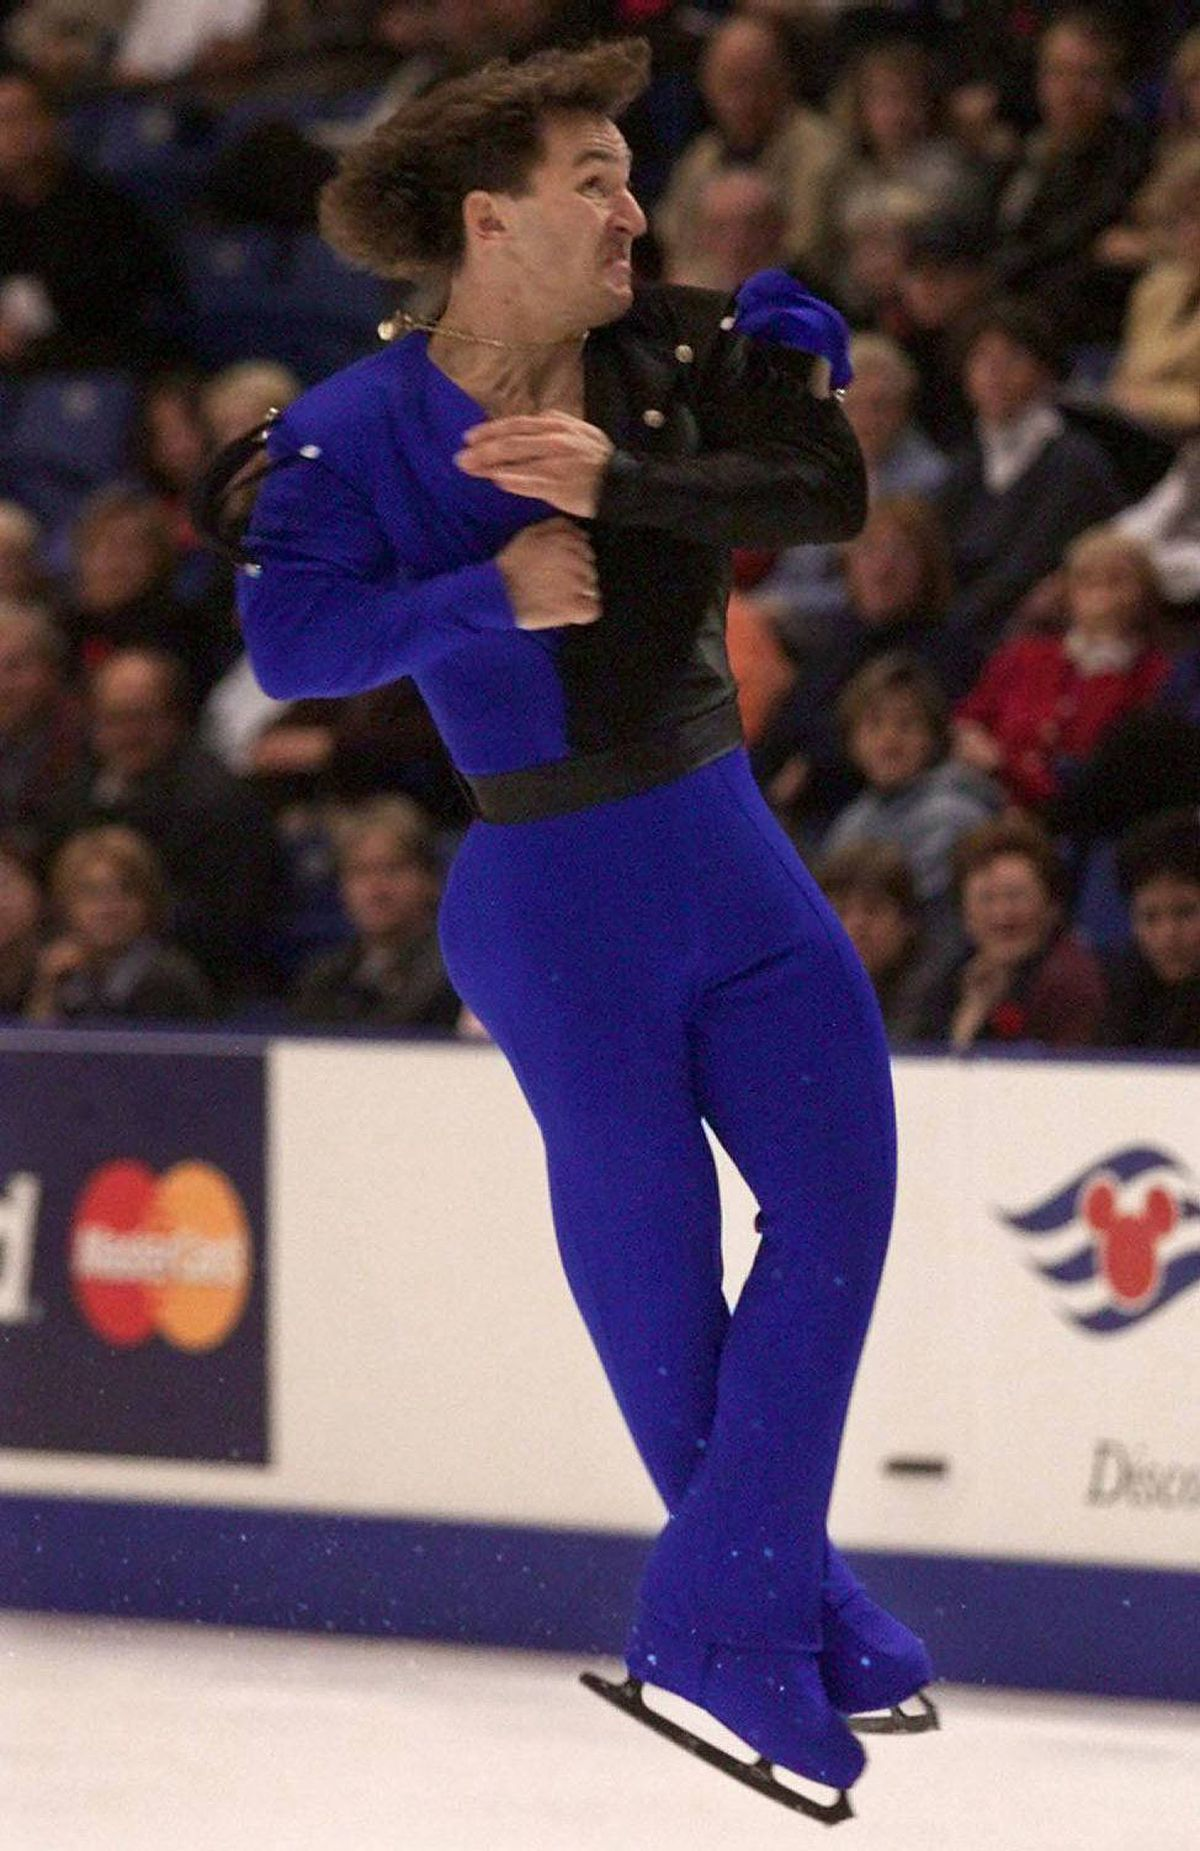 Elvis Stojko jumps during the men's short program event at Skate Canada in Saint John, N.B. on Thursday, Nov. 4,1999.